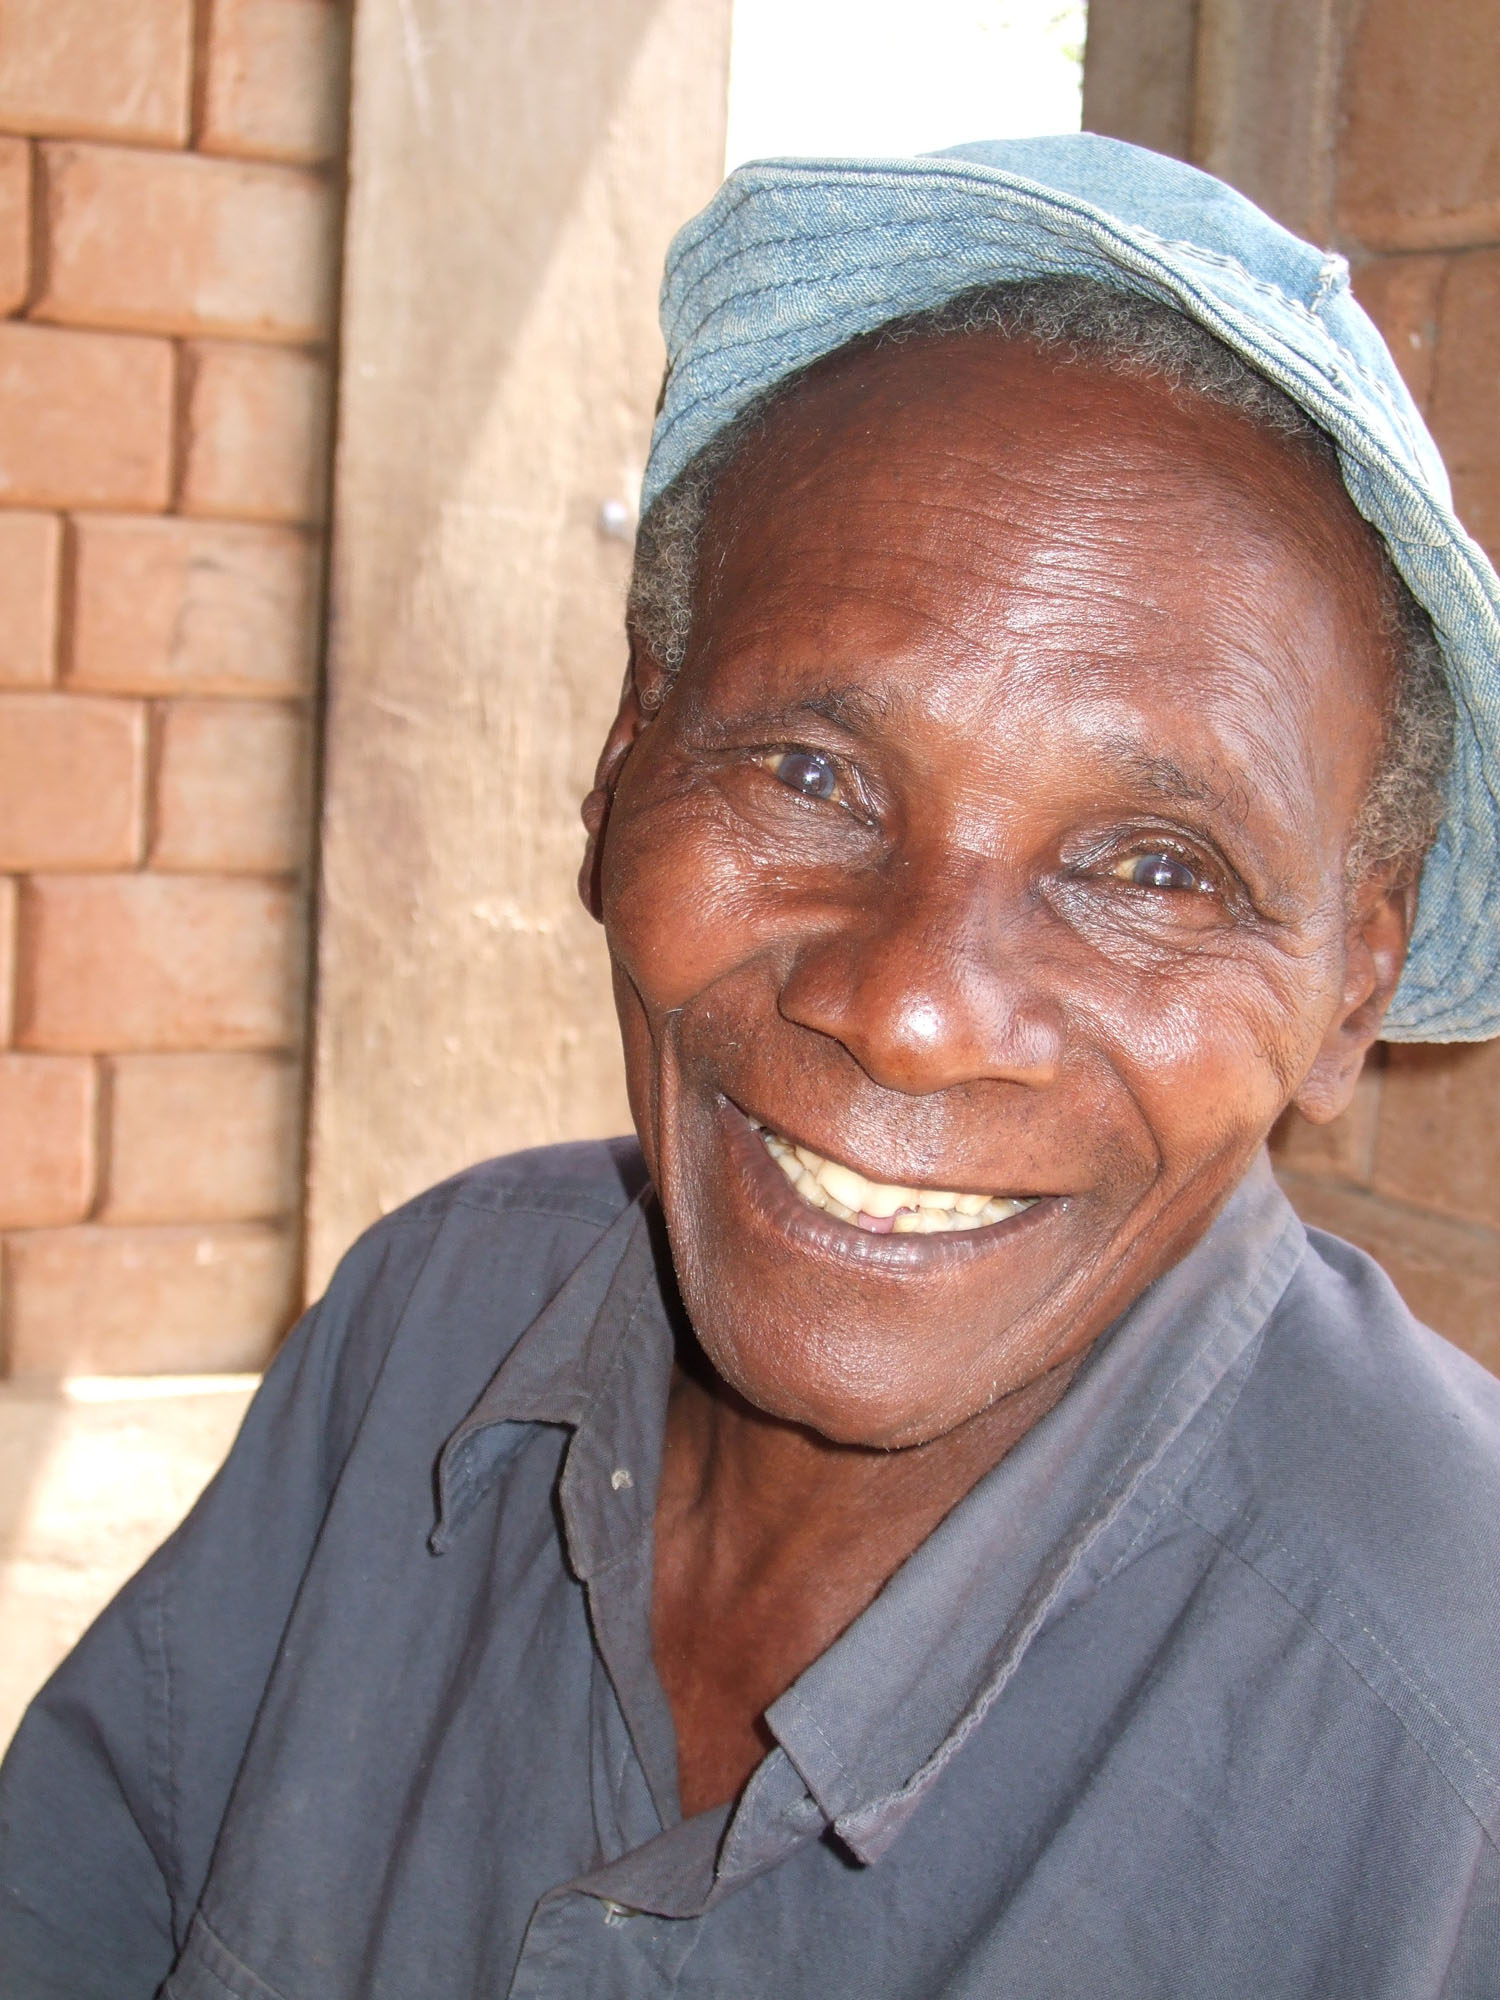 Malonza Malembew is one of just two grandfathers at the Nyumbani village.